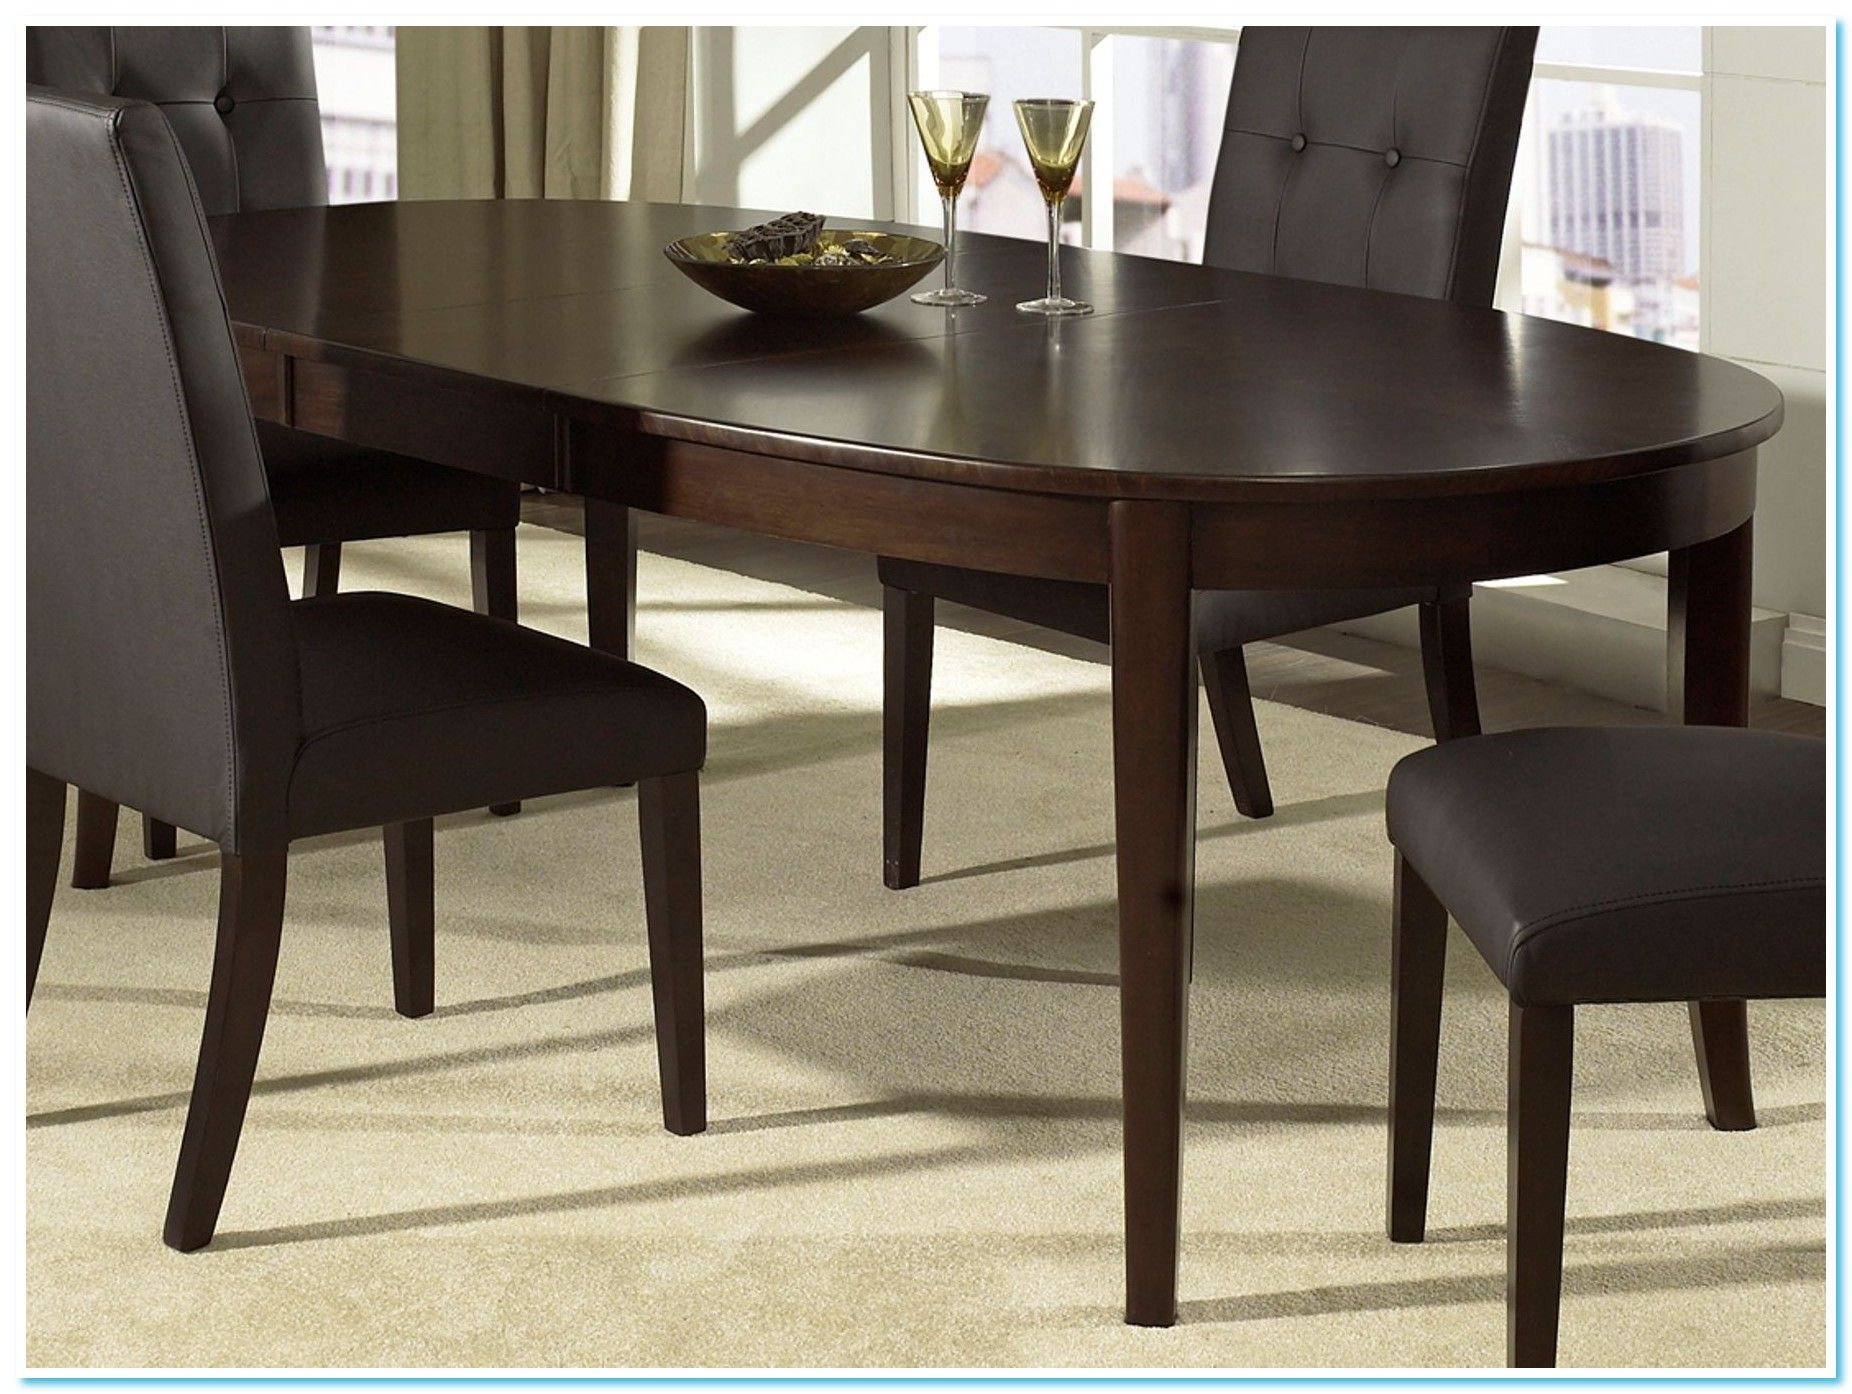 52 Reference Of Oval Dining Table And Chairs Ireland In 2020 Dining Room Table Legs Dining Table Chairs Dining Table